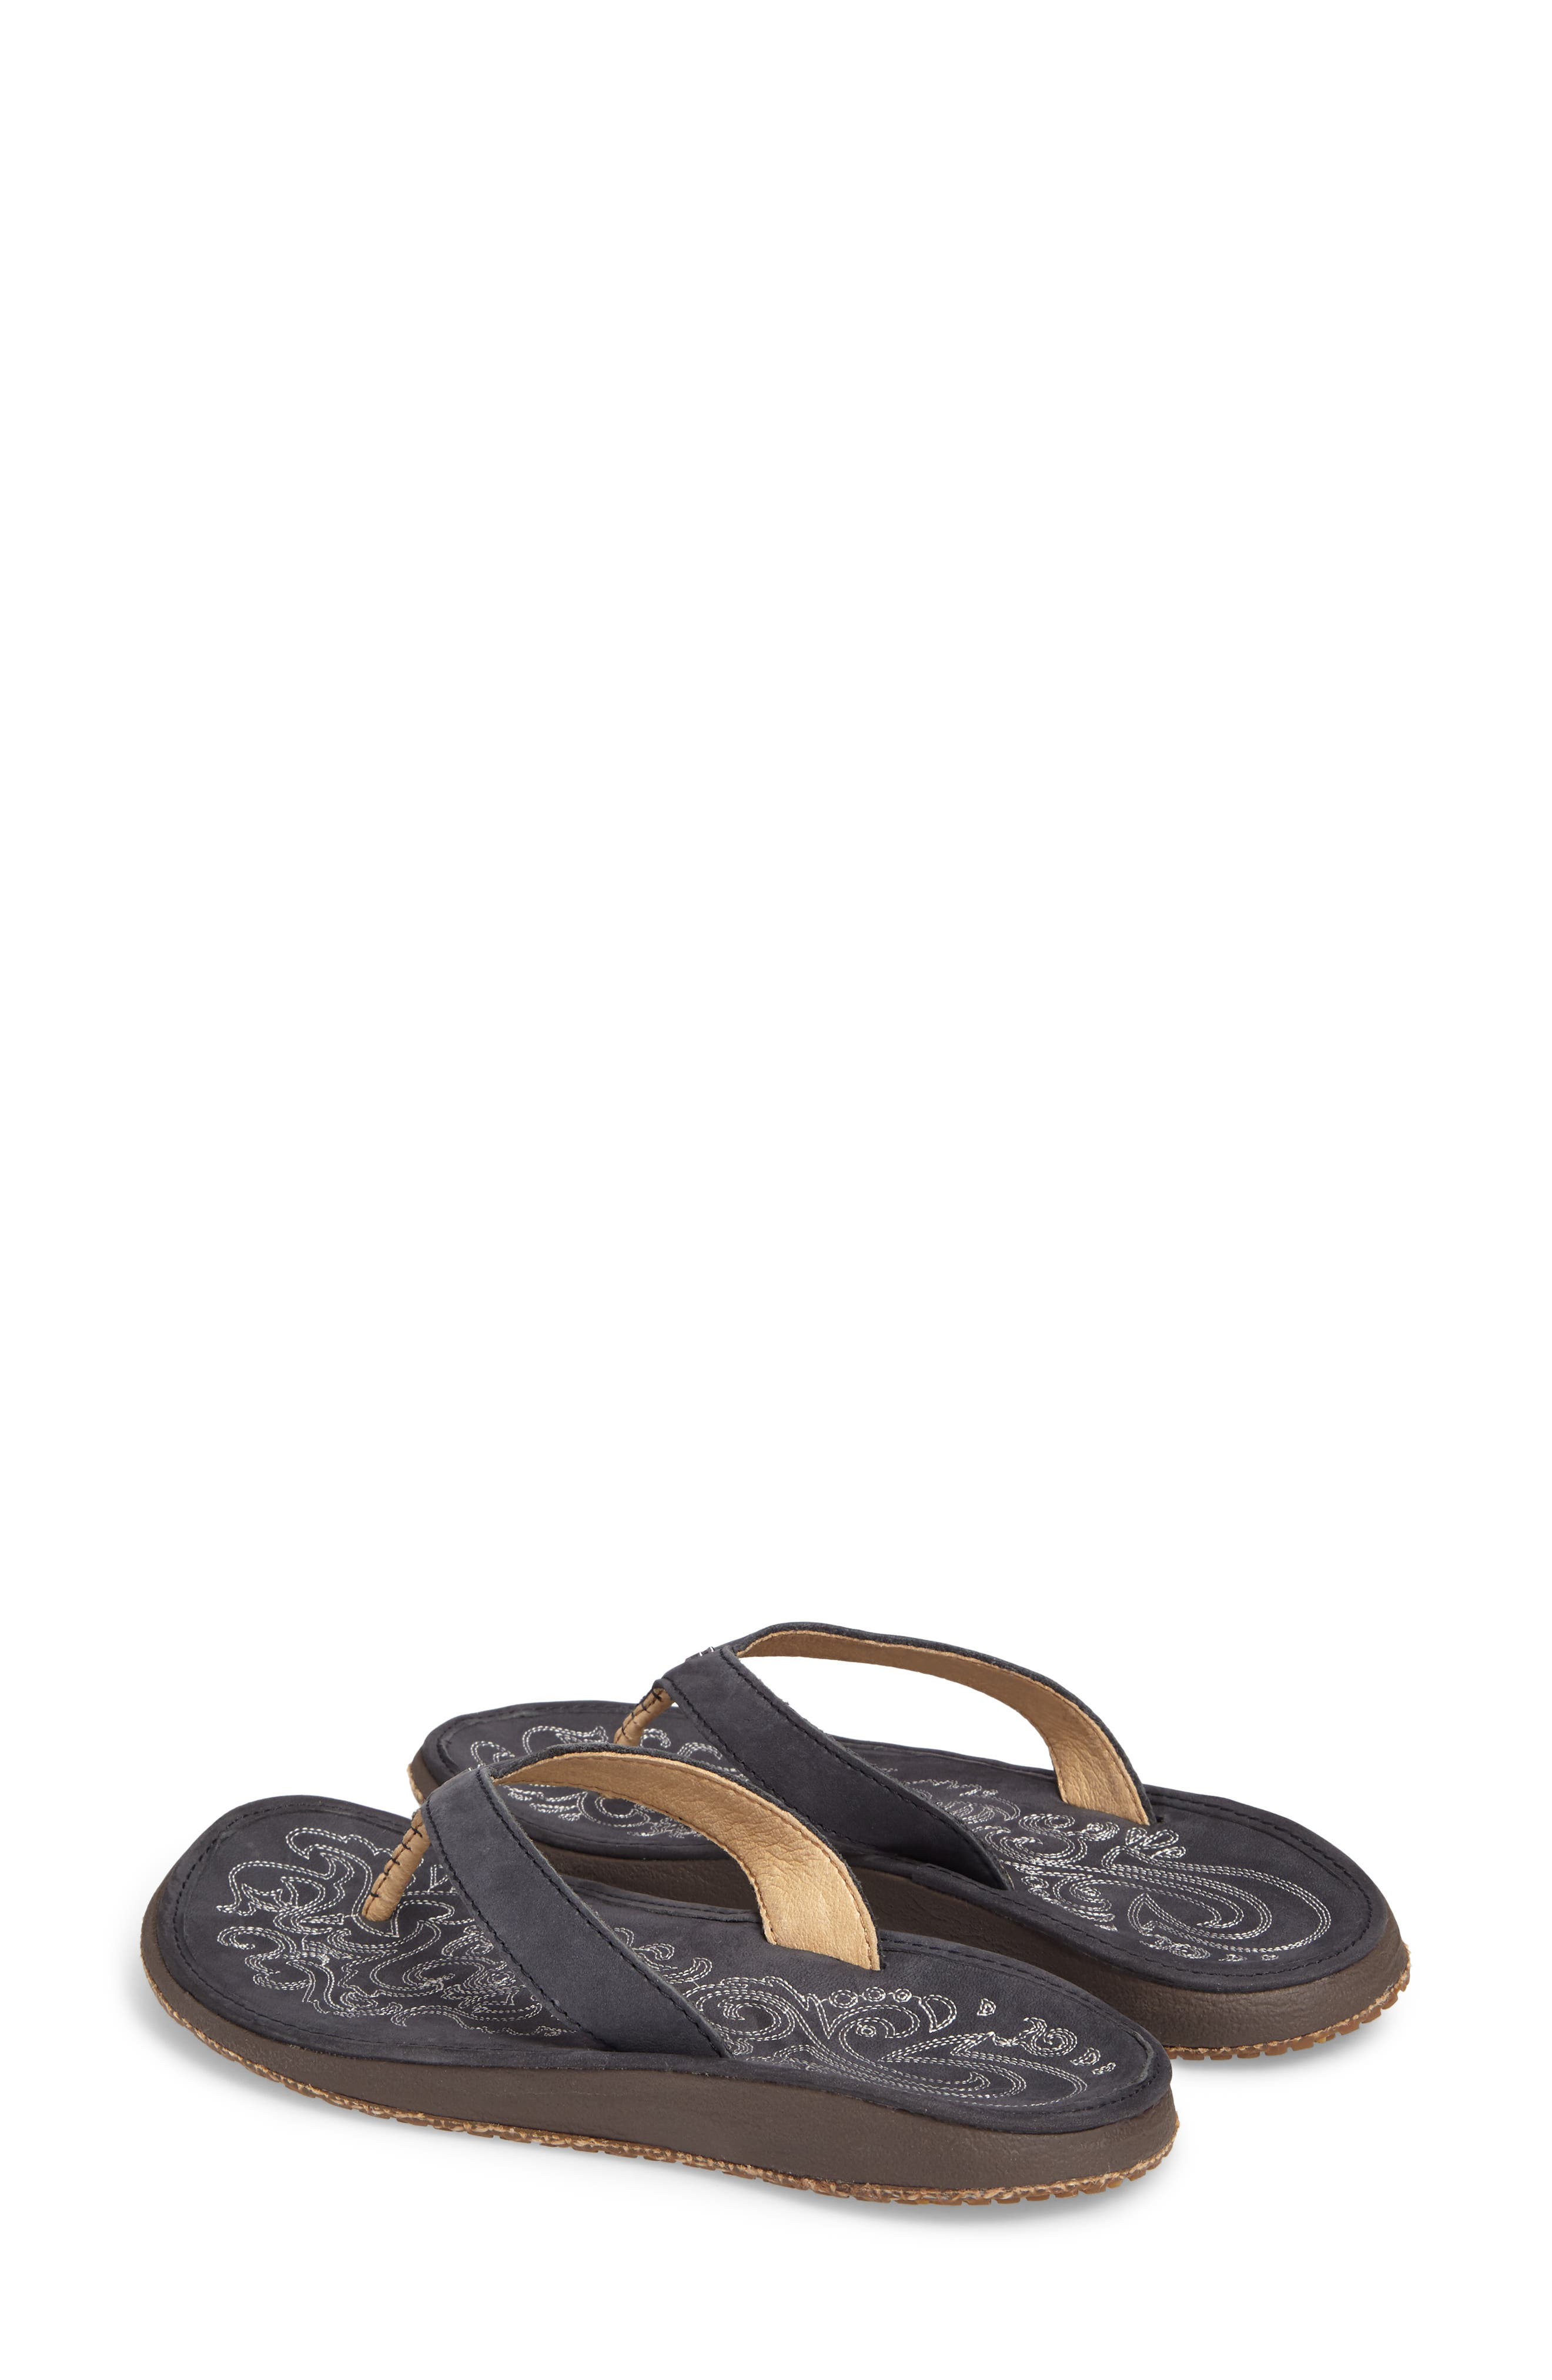 'Paniolo' Thong Sandal,                             Alternate thumbnail 2, color,                             Trench Blue/ Blue Leather